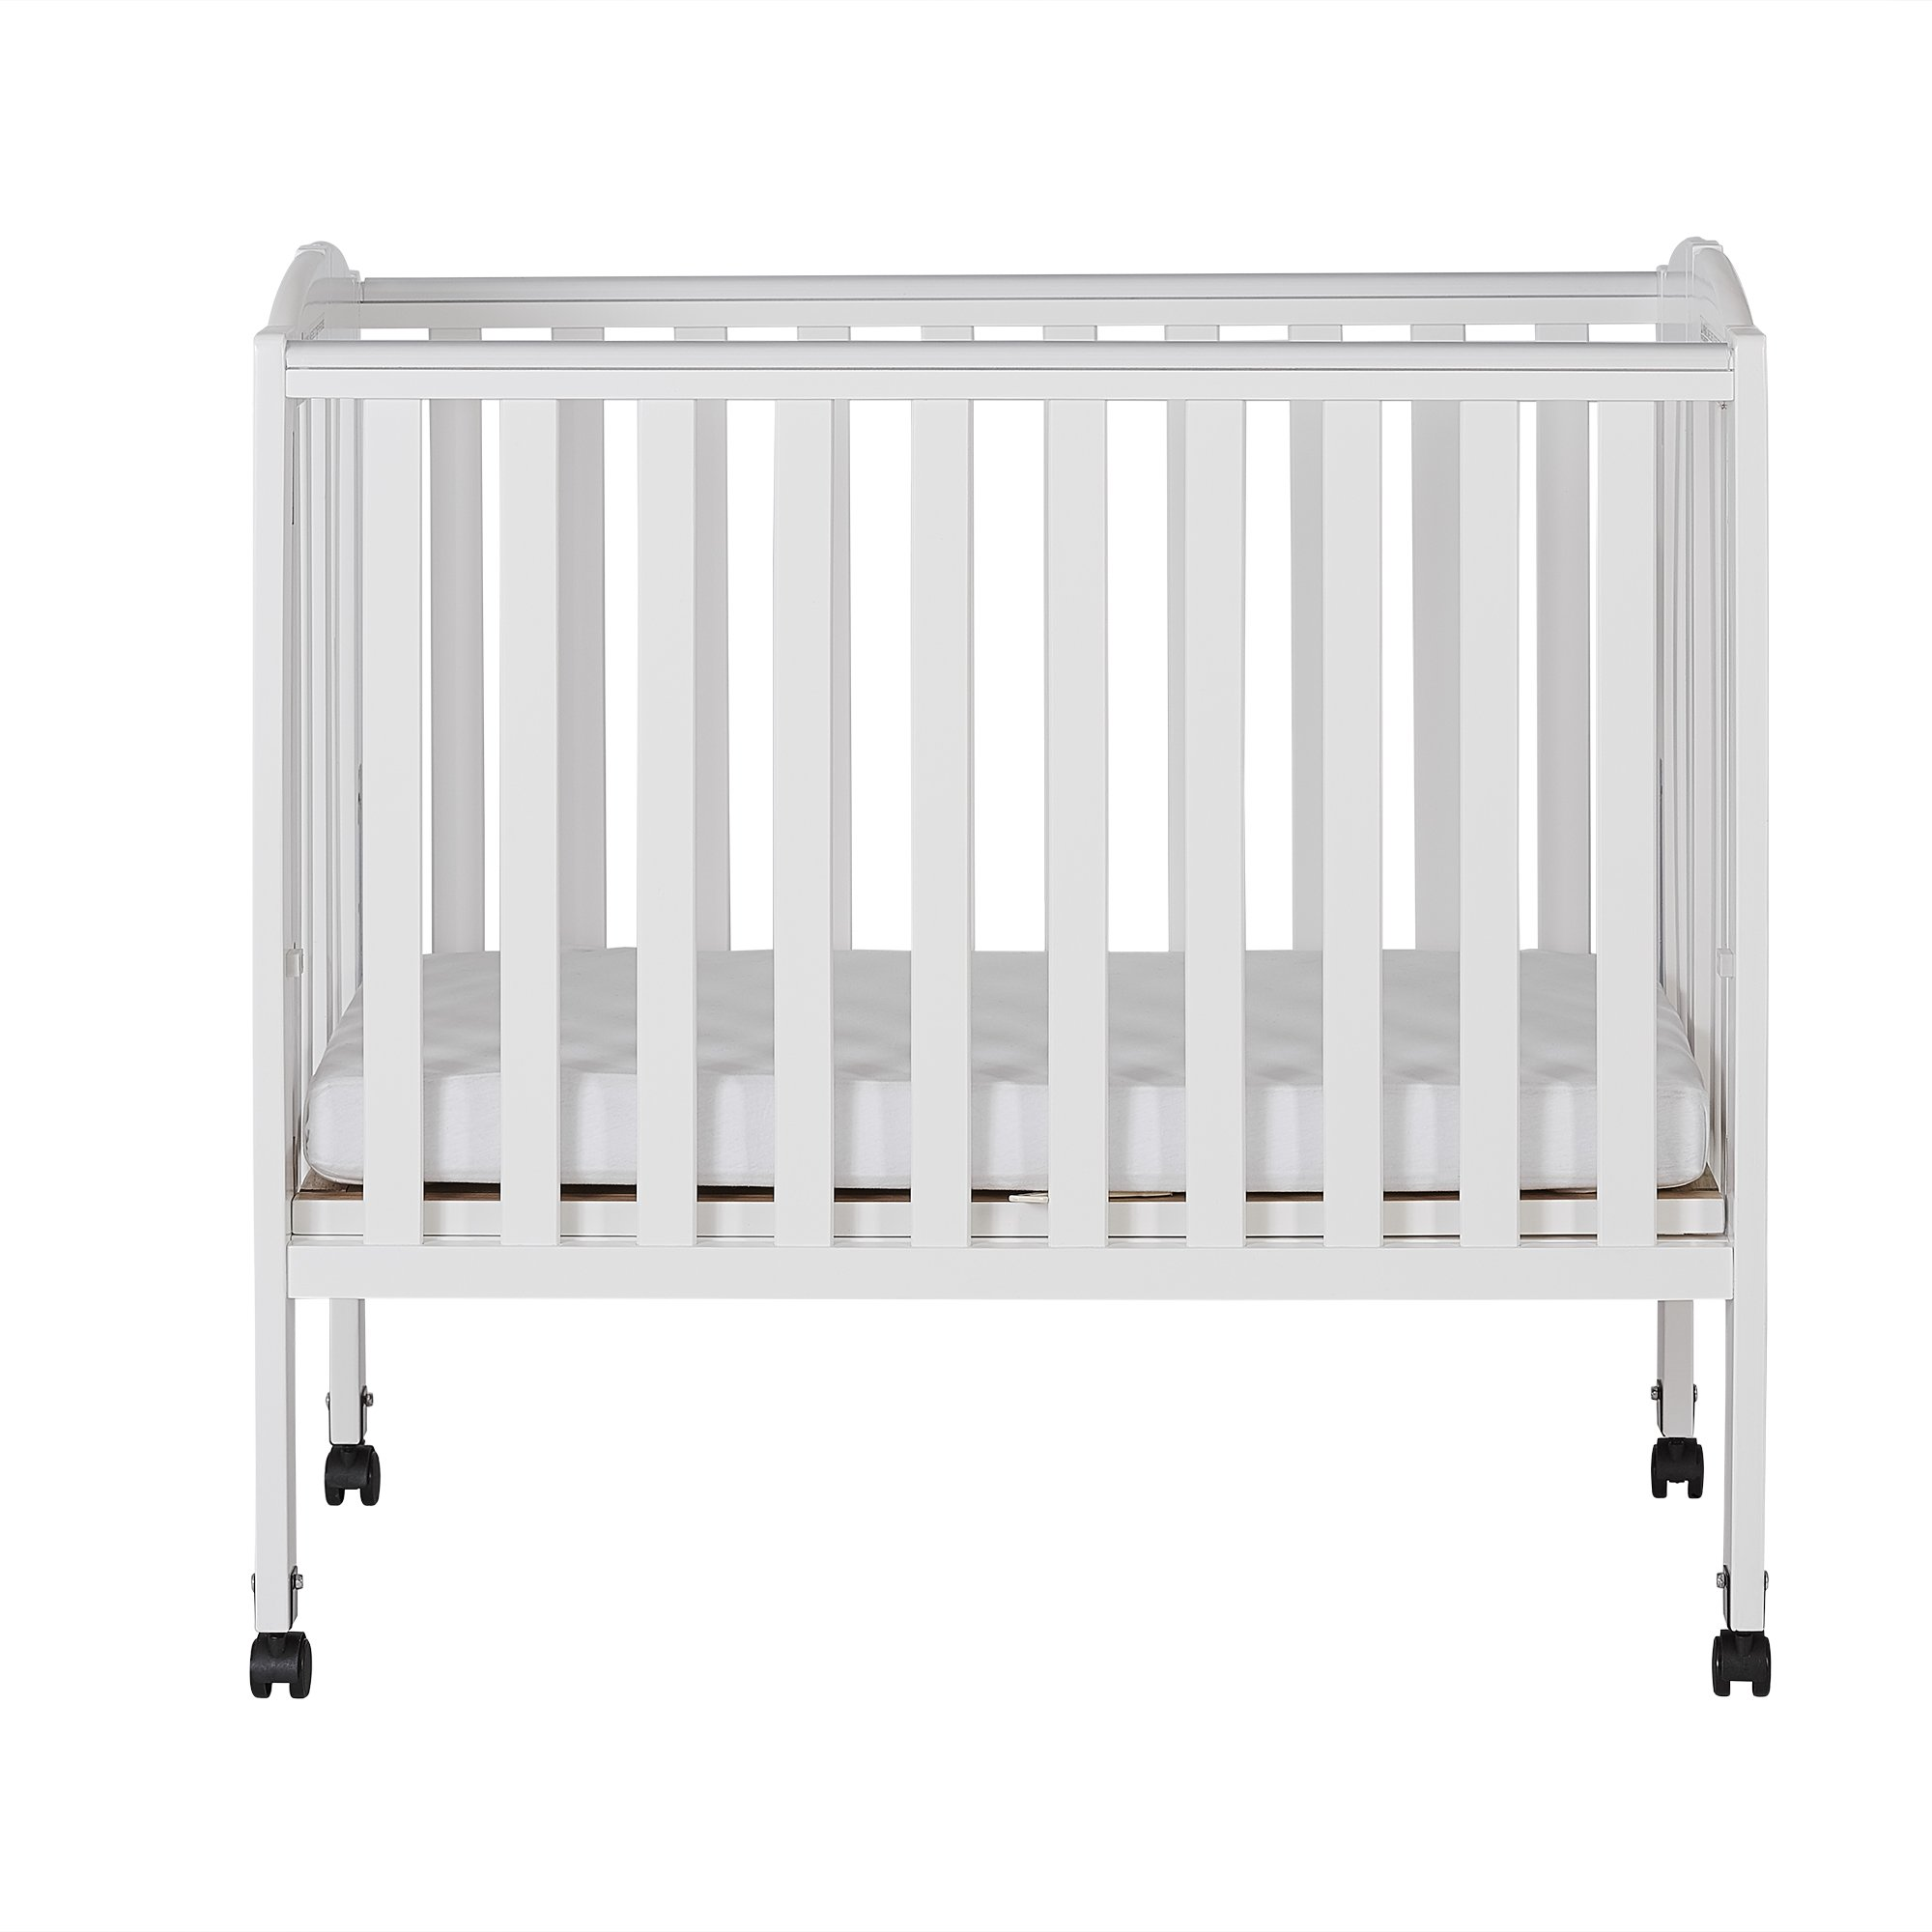 collections gen compact see first select factory next responder cribs crib infant evacuation firstresponder detail toddler through natural